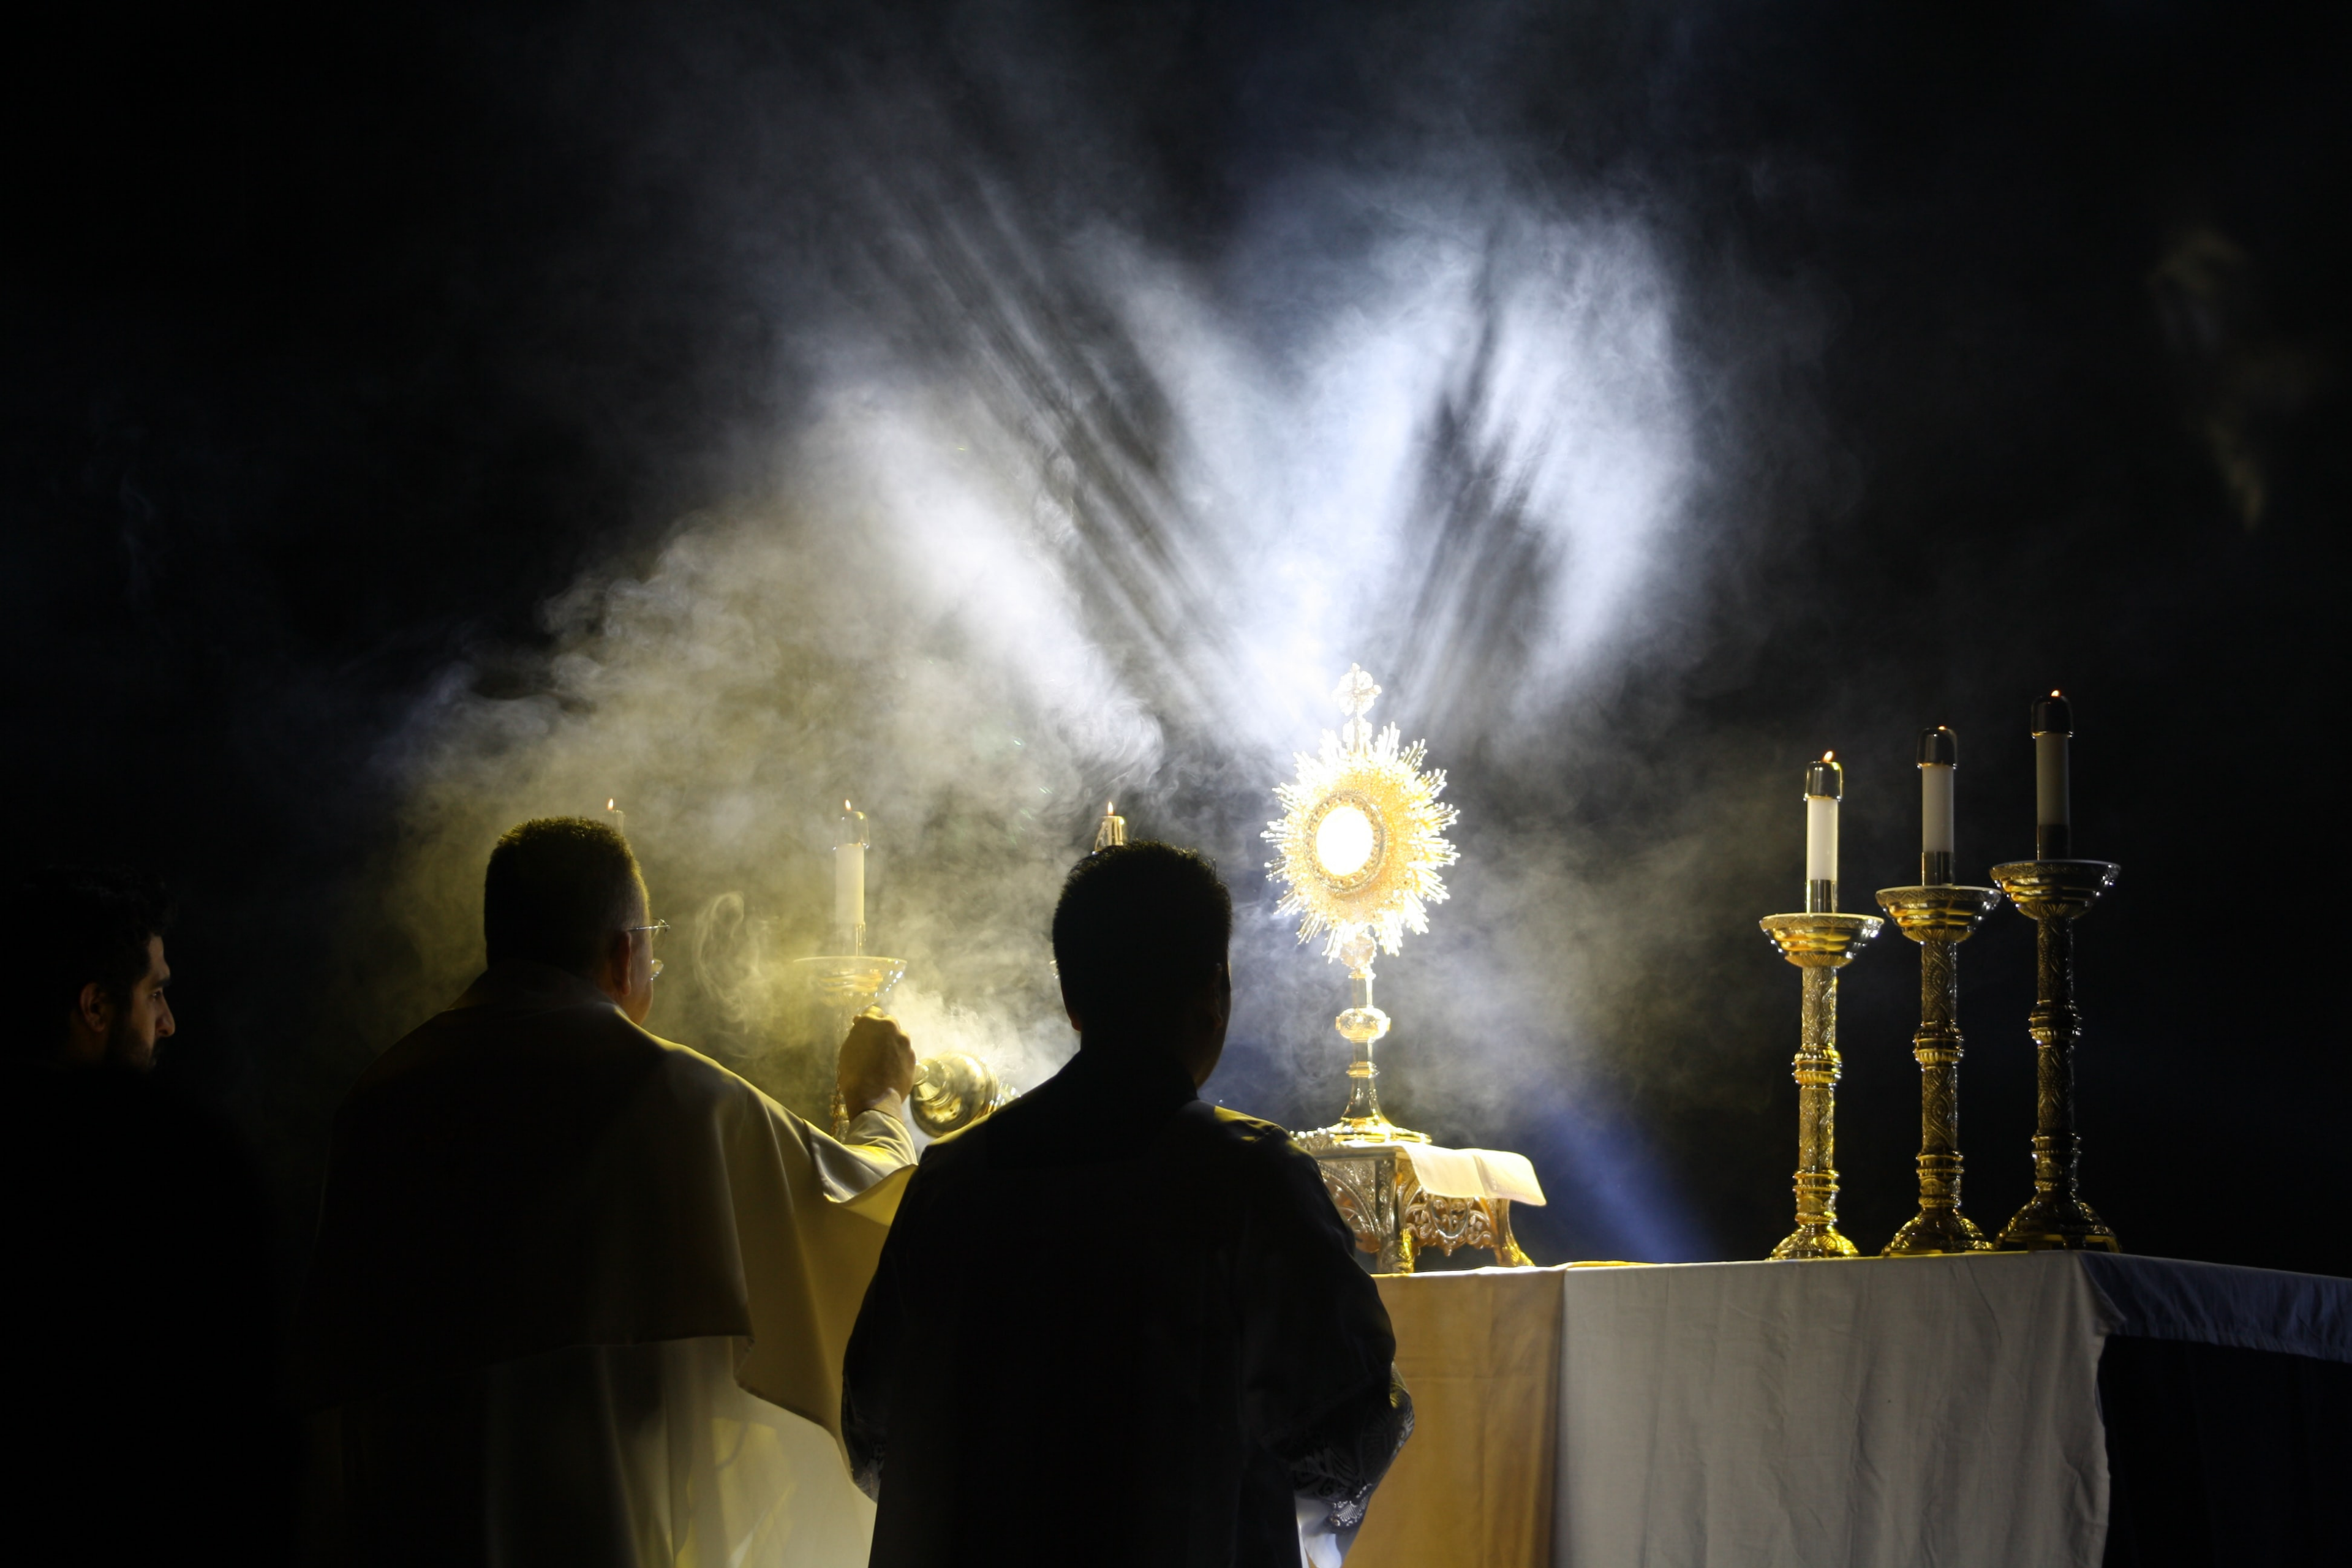 Two men praying before Jesus in the Blessed Sacrament.